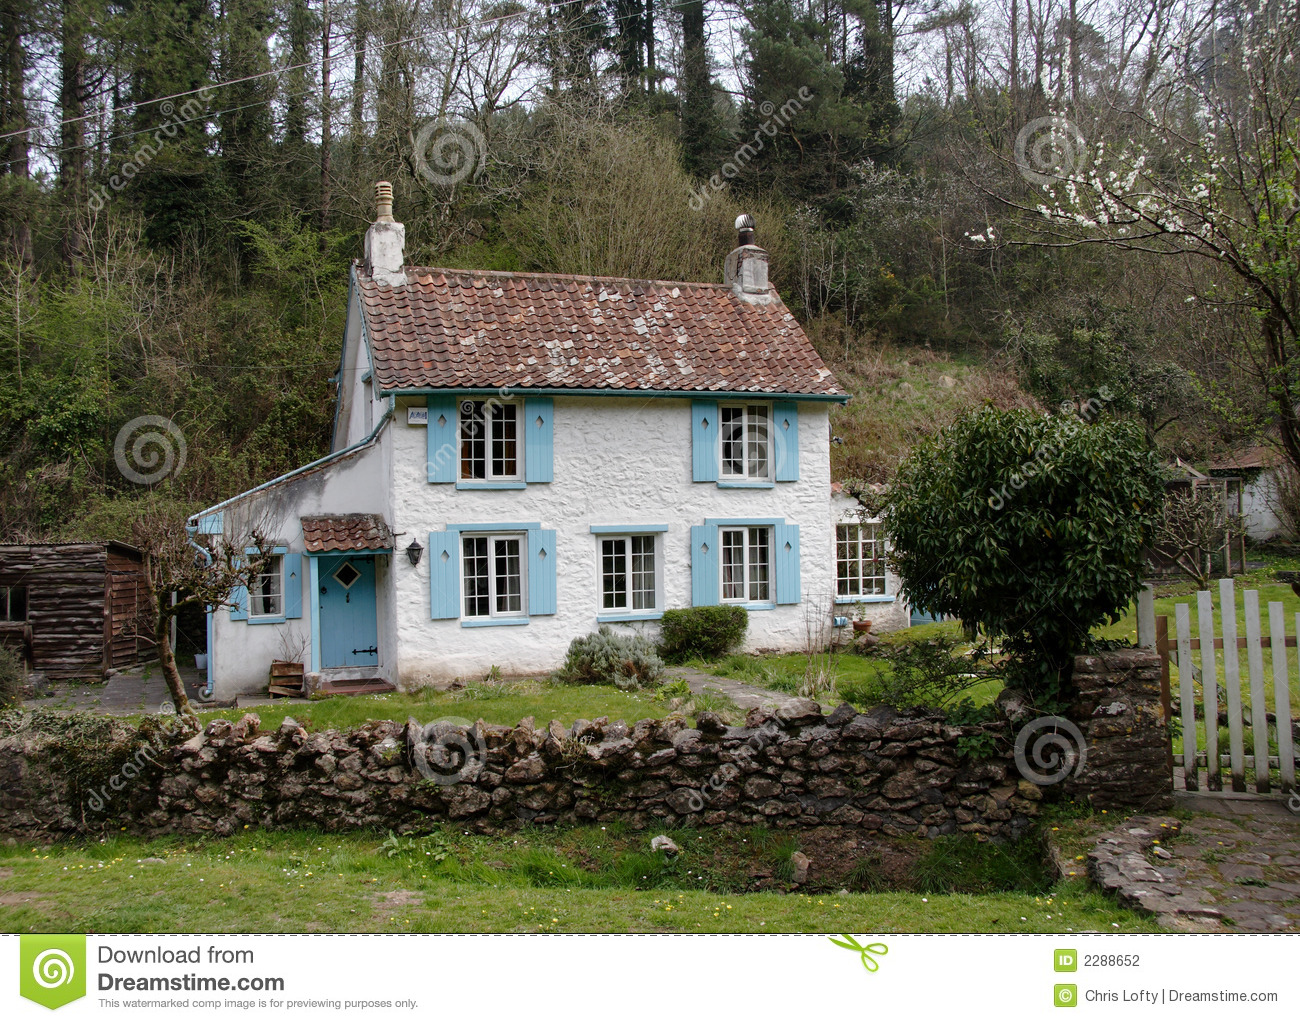 Quaint English Cottages Image gallery for : quaint english cottages Quaint English Cottages